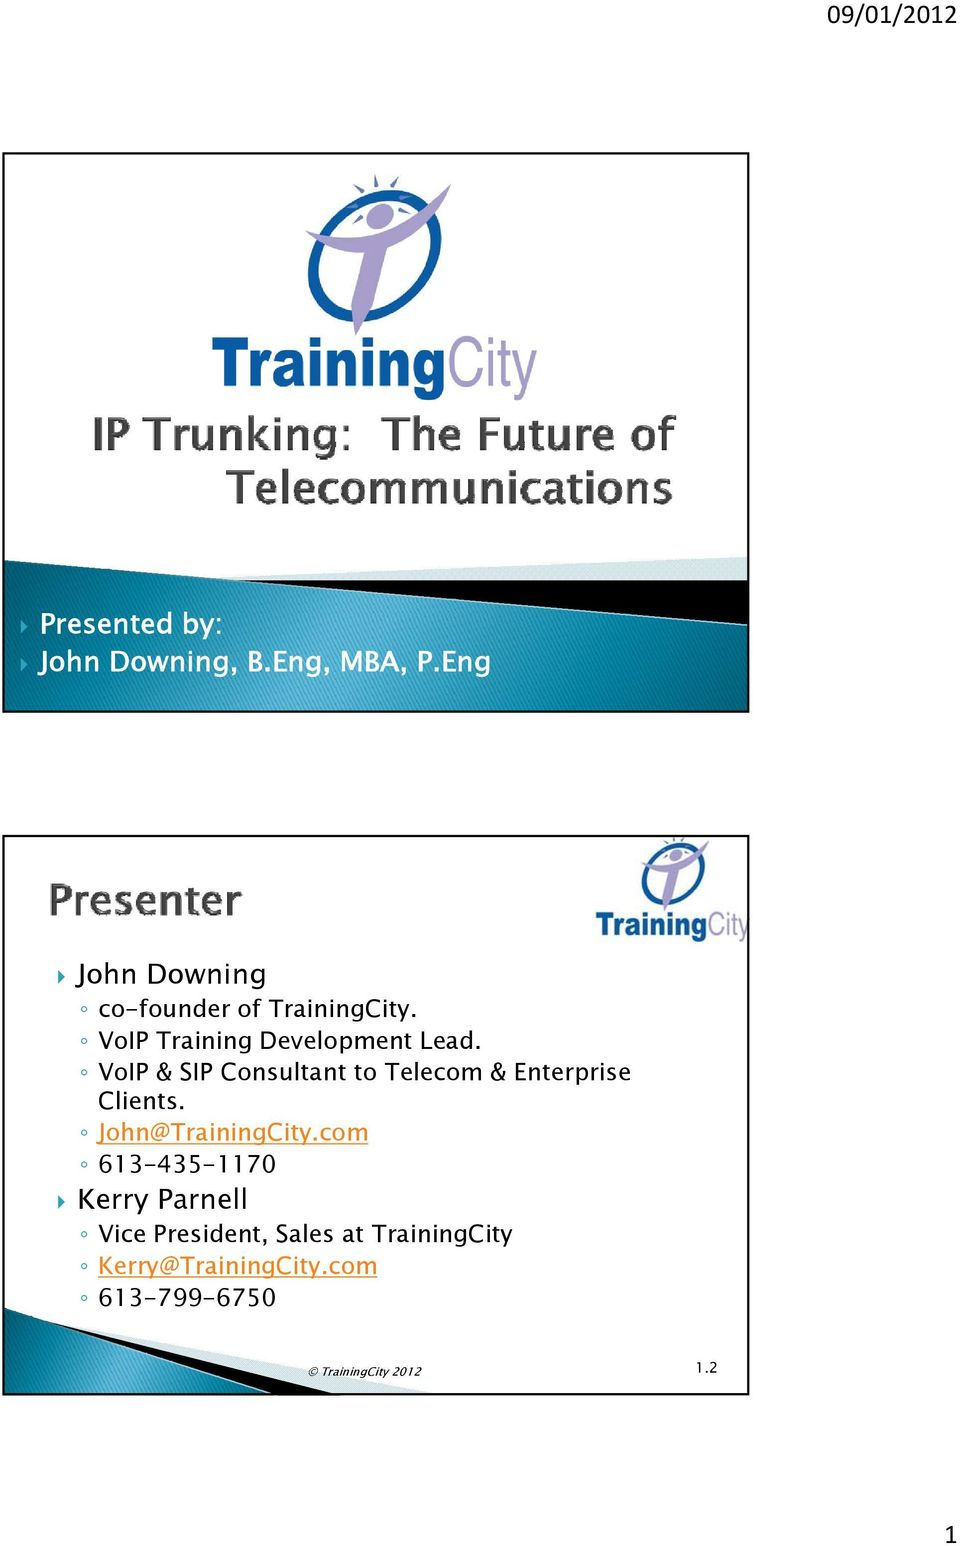 VoIP & SIP Consultant to Telecom & Enterprise Clients. John@TrainingCity.